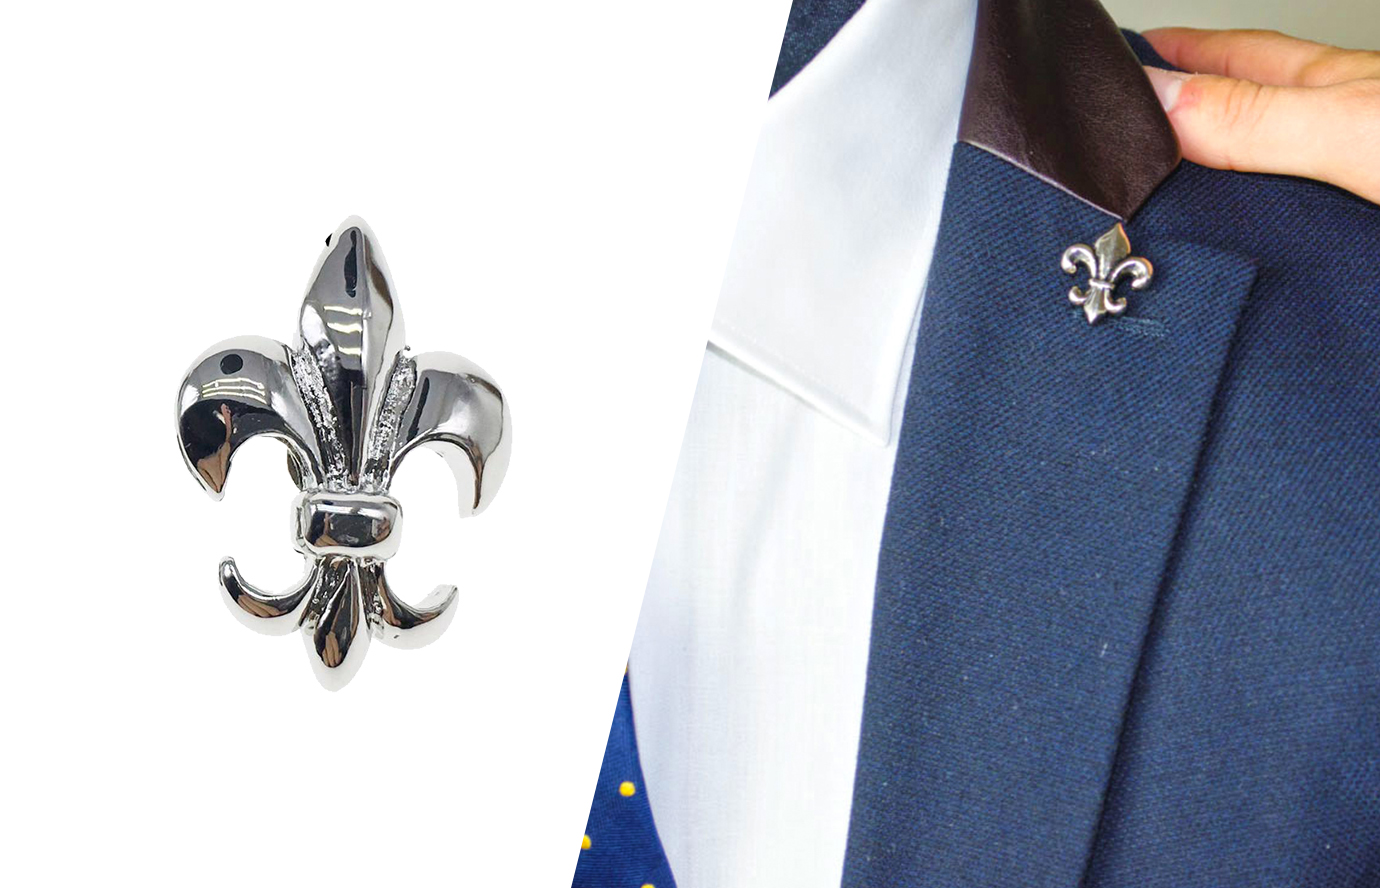 suit accessories: the lapel pin